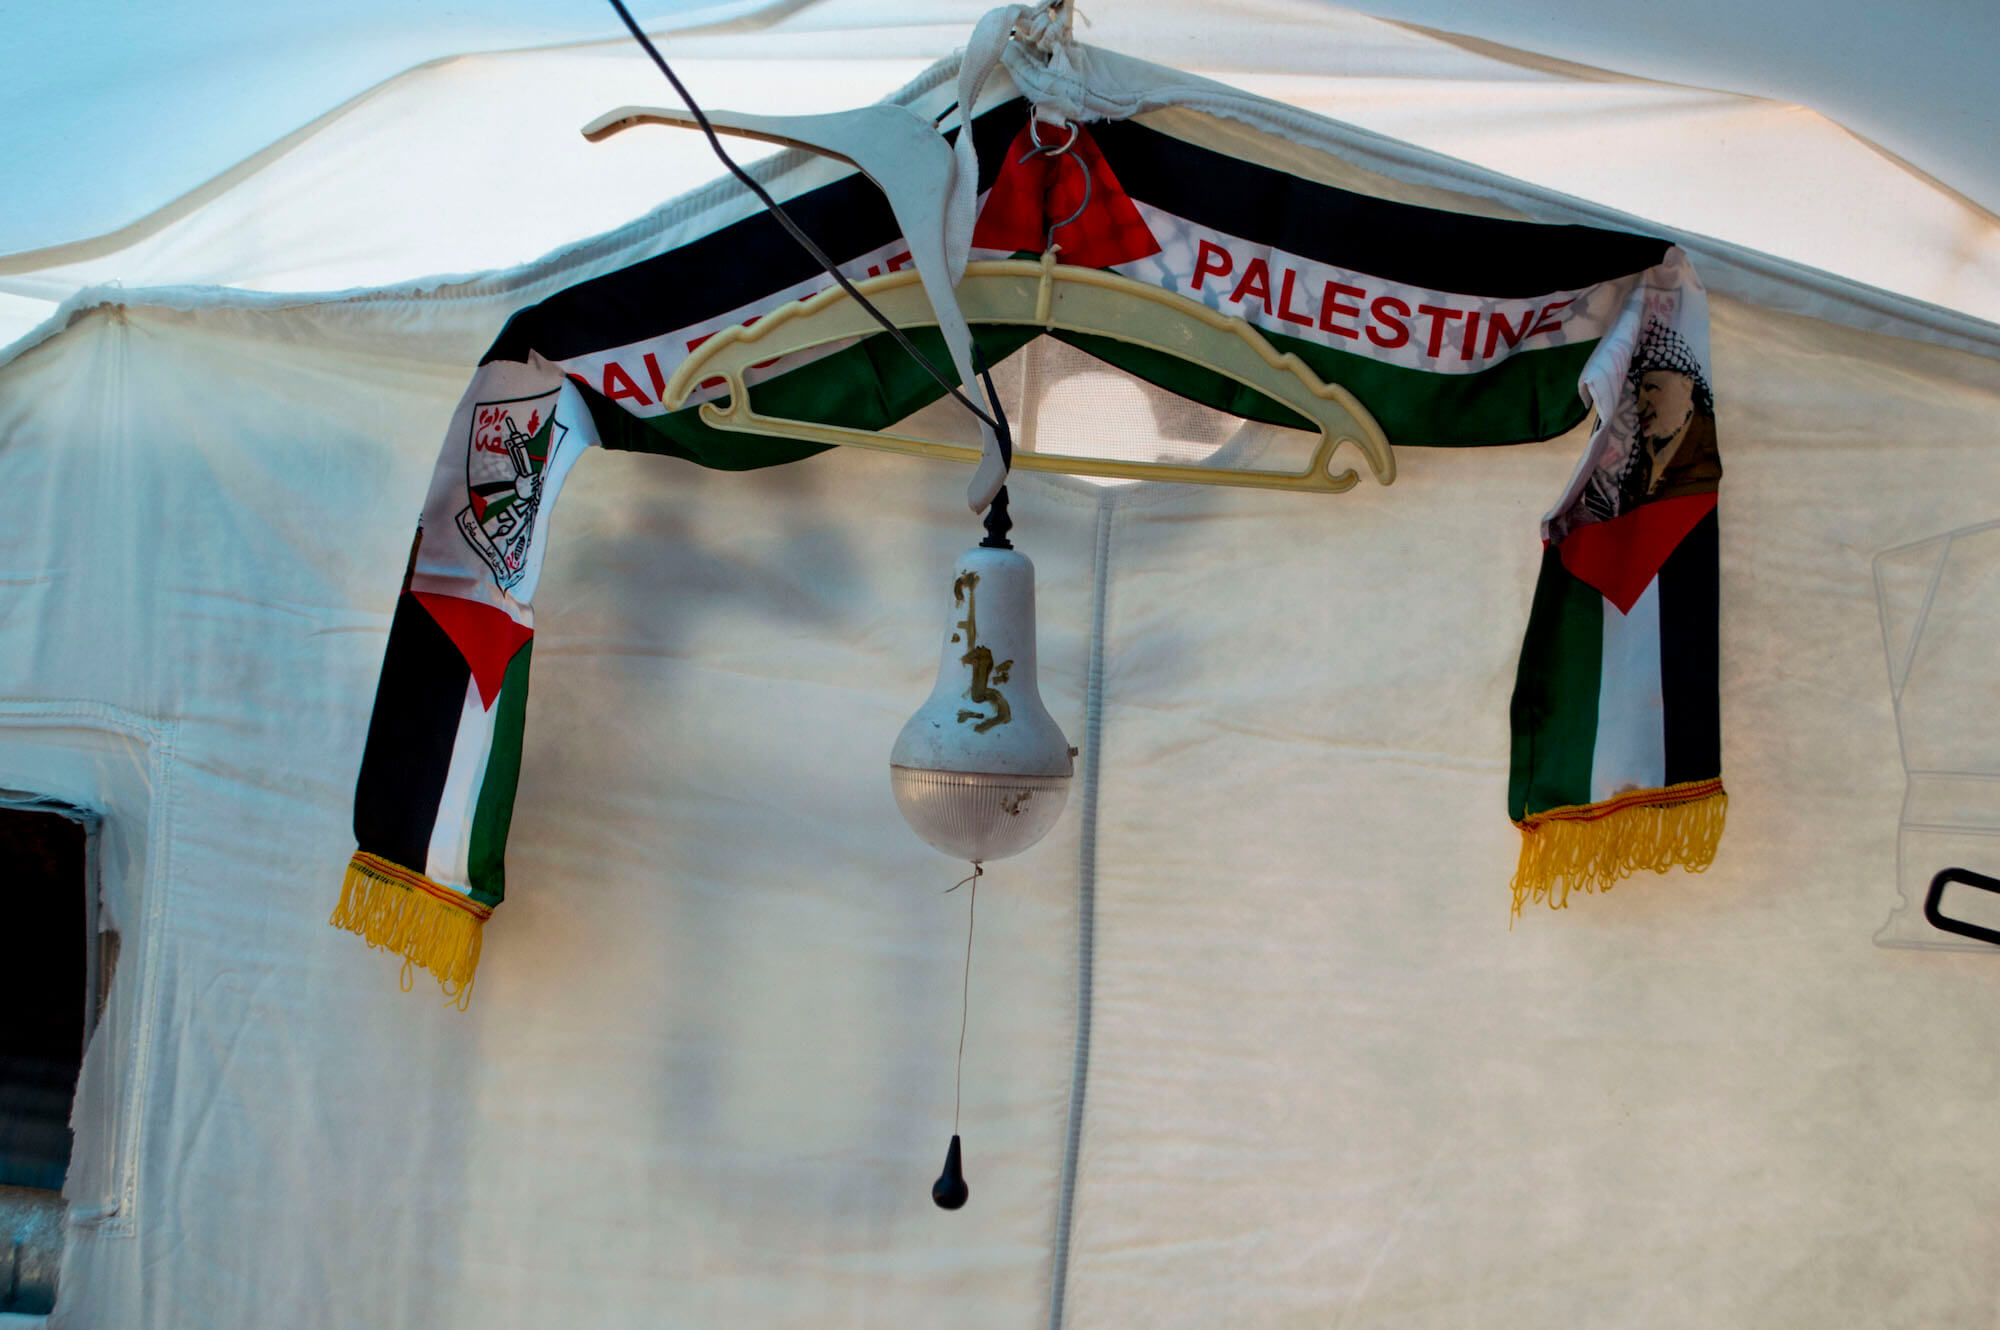 A small Palestine scarf adorns the plastic wall of one of the tents at Baharka Camp. Talk of Palestine is frequent, and on Nakba day many of the Palestinian refugees at Baharka will reflect back on the similarities between their current hardship and the hardship of their parents and grandparents when they first fled violence in 1948. (Photo: Abed Al Qaisi)